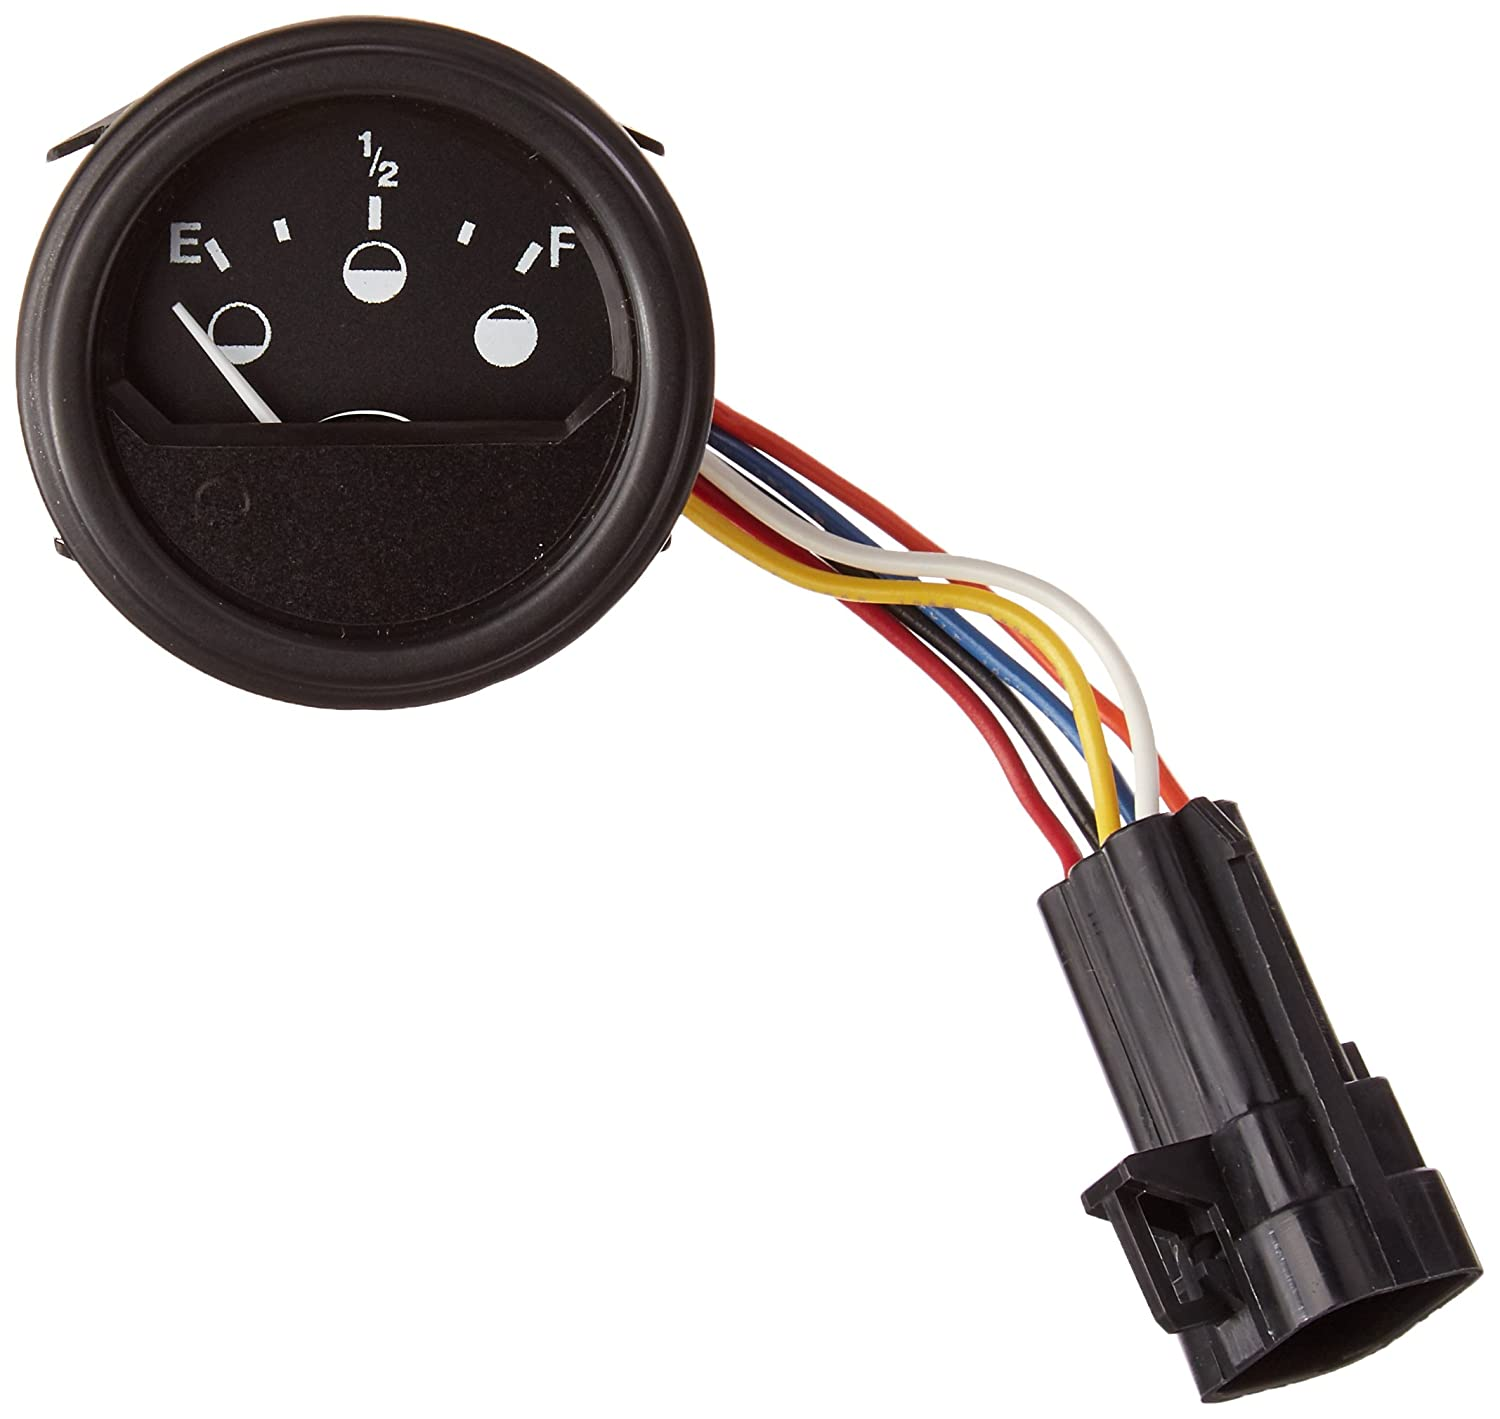 Ezgo 610583 State Of Charge And Fuel Meter Kit Wiring Harness Automotive System Equipment Garden Outdoor